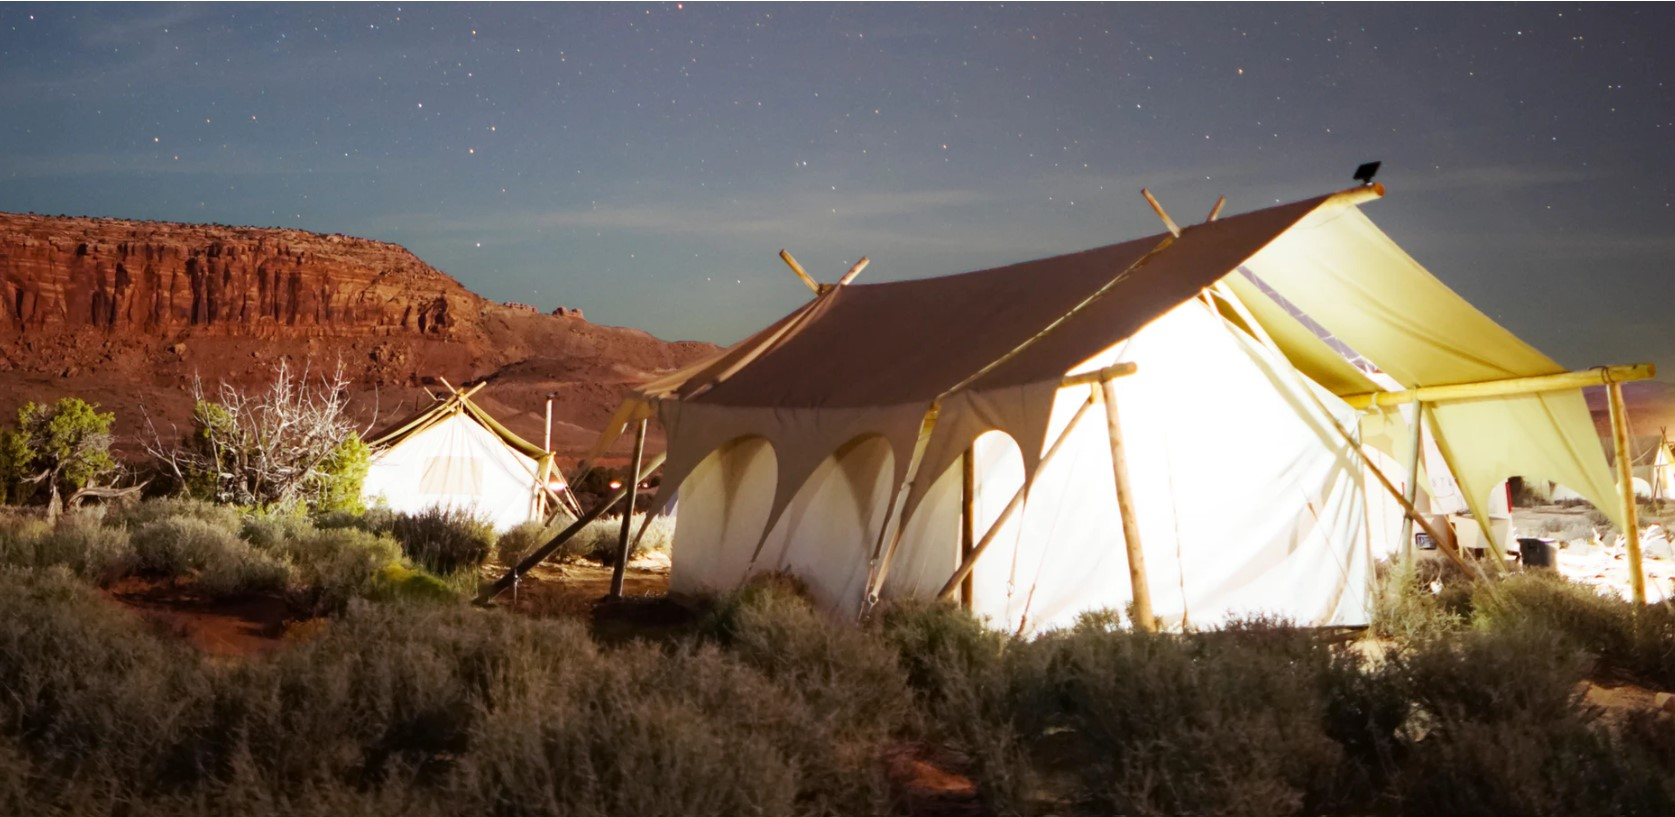 Best Tent Air Conditioner featured image of glamping tents in the desert